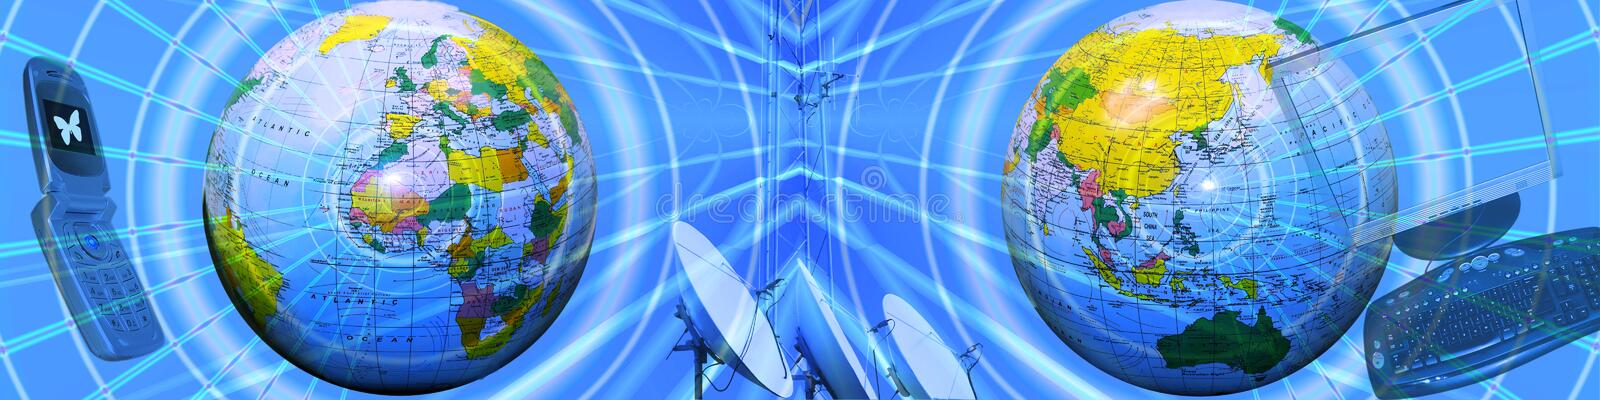 Header: Internet, connections and directions. This blue banner / header has an abstract background with grid like patterns and lines going in all directions royalty free stock image